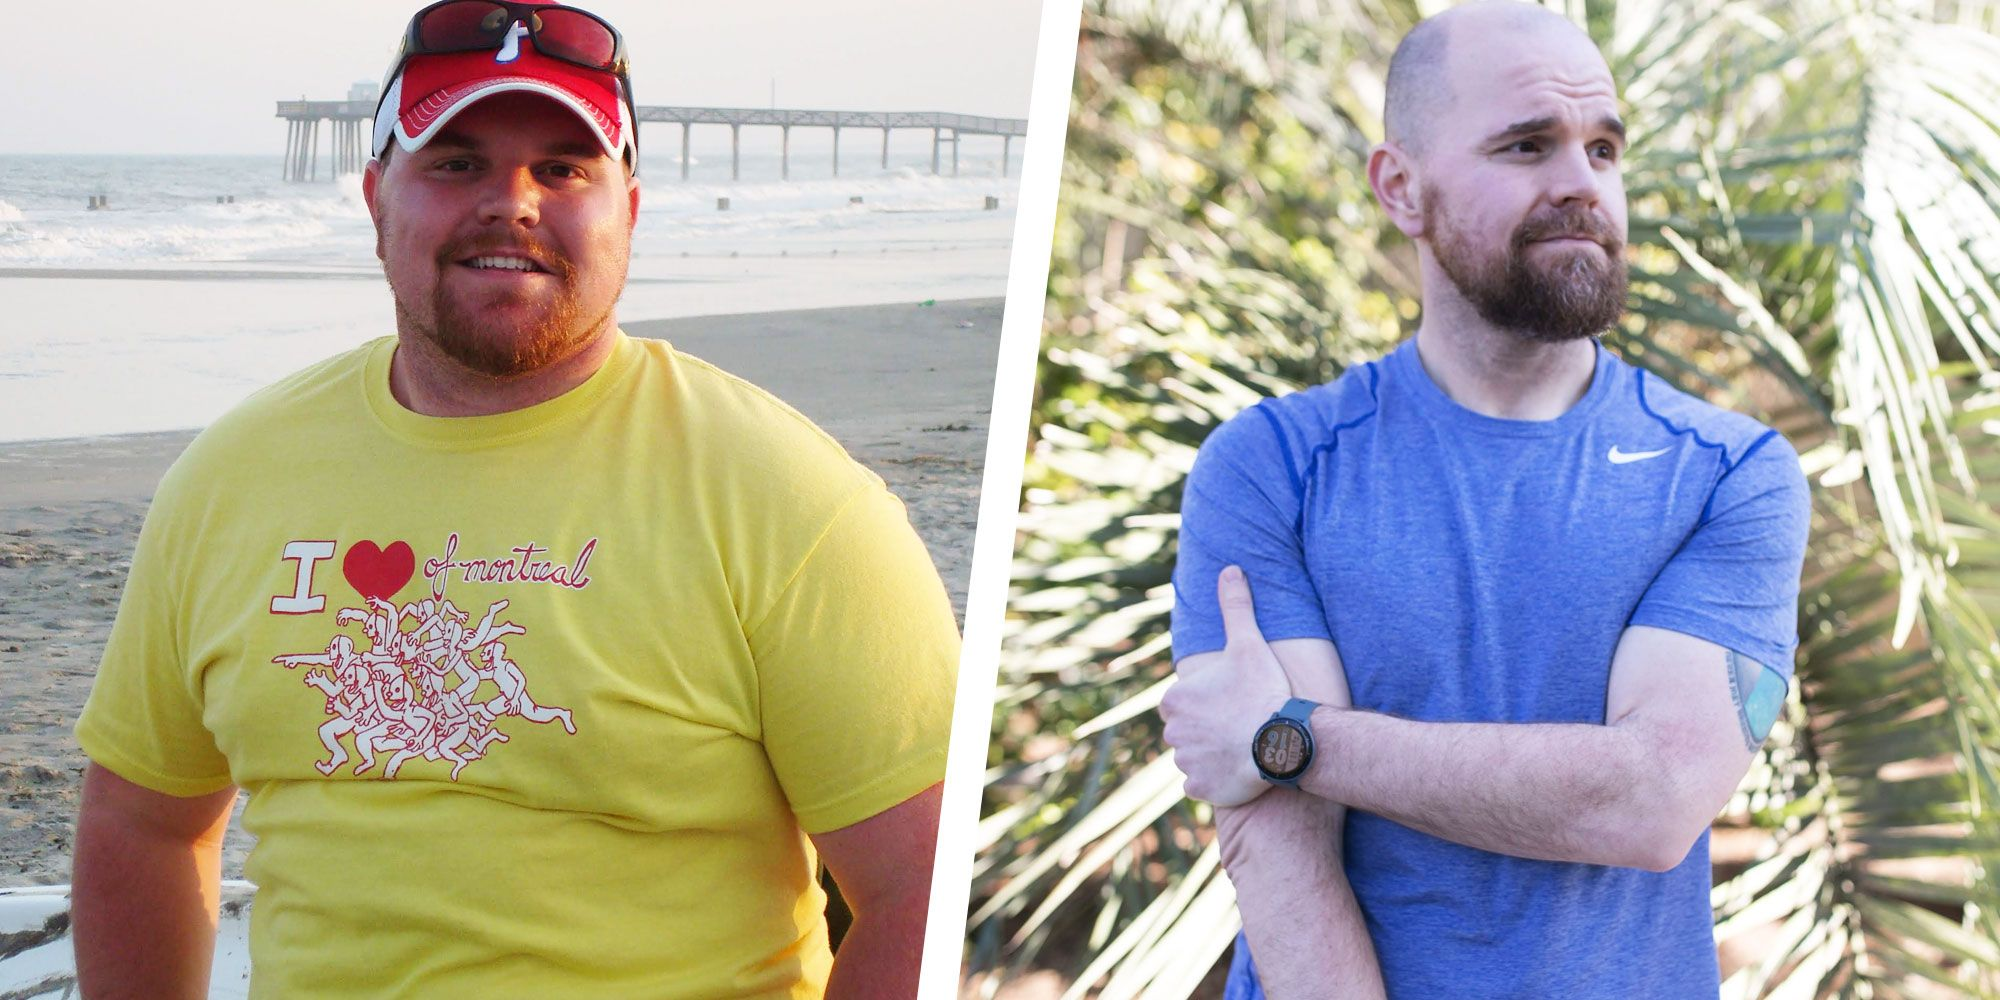 Intermittent Fasting Helped This Ex-Football Player Lose More Than 100 Pounds